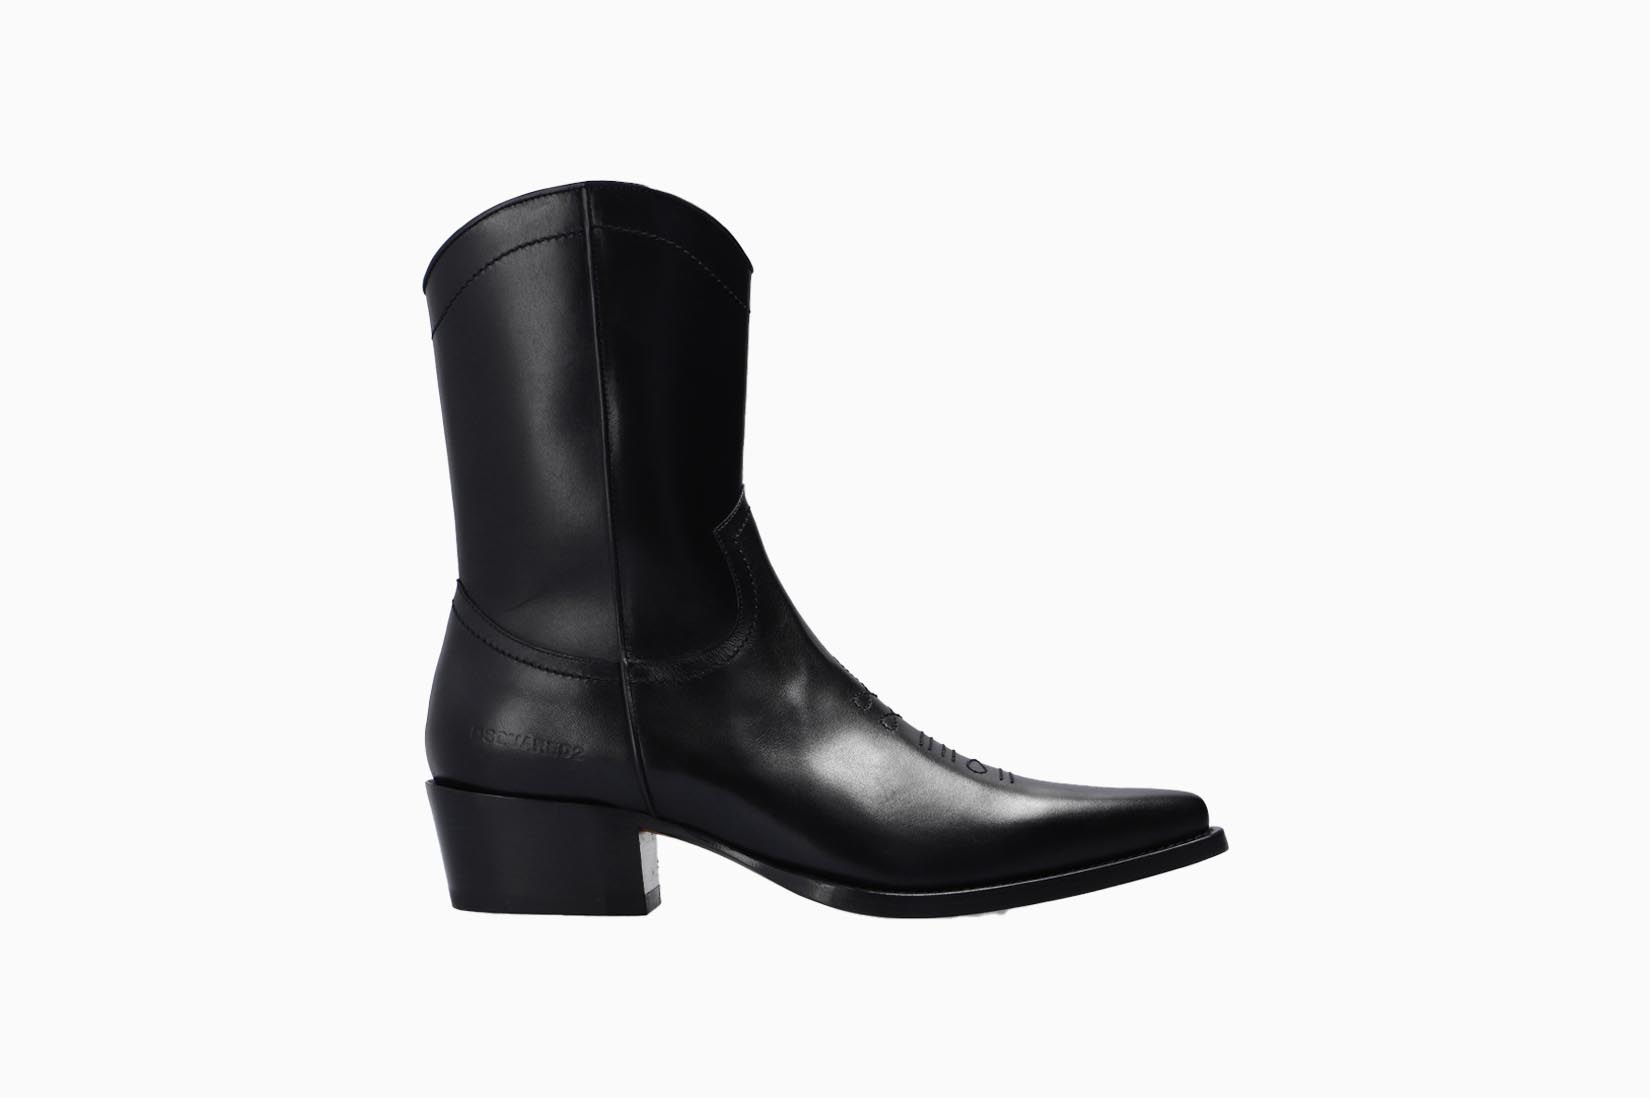 best boots men dsquared2 leather western boots review Luxe Digital